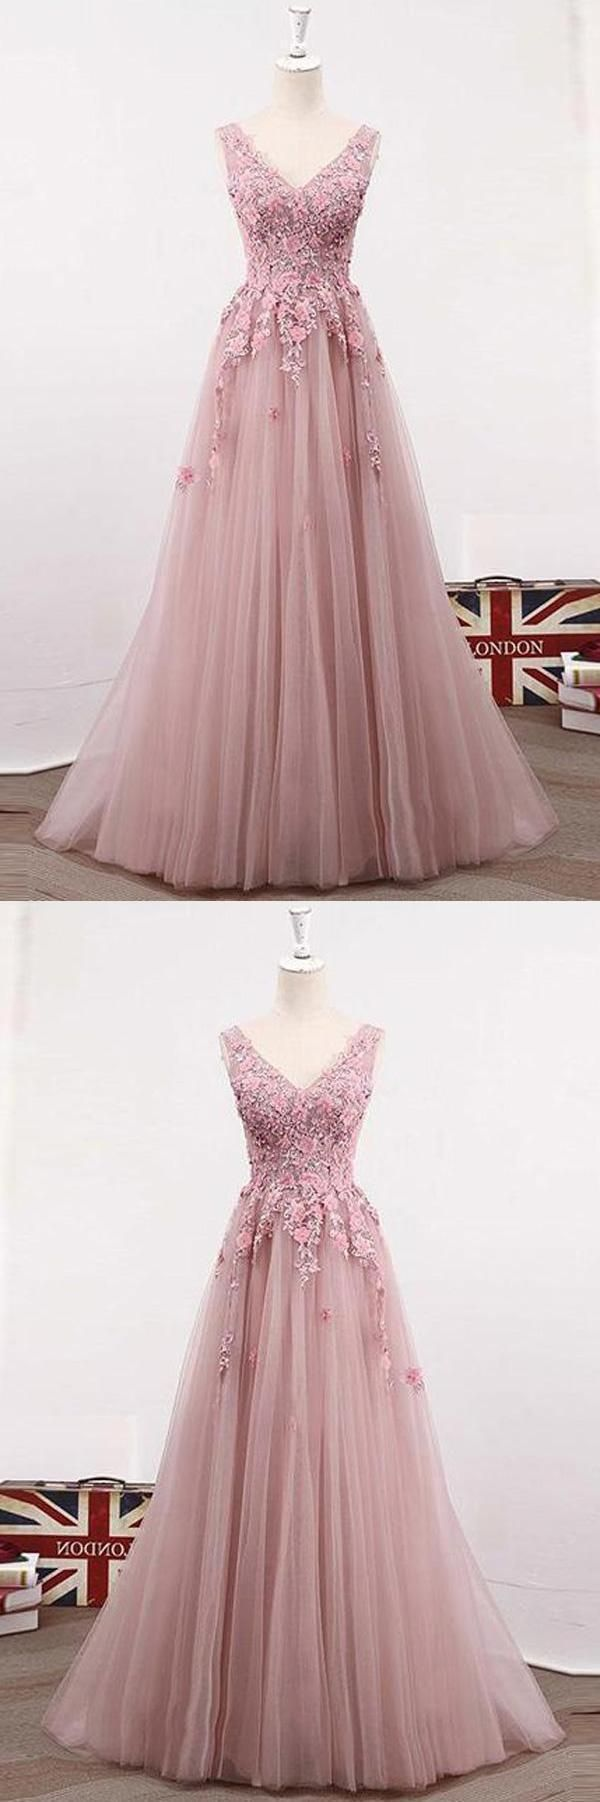 Cheap light blush prom dresses prom dresses lace pink prom dresses